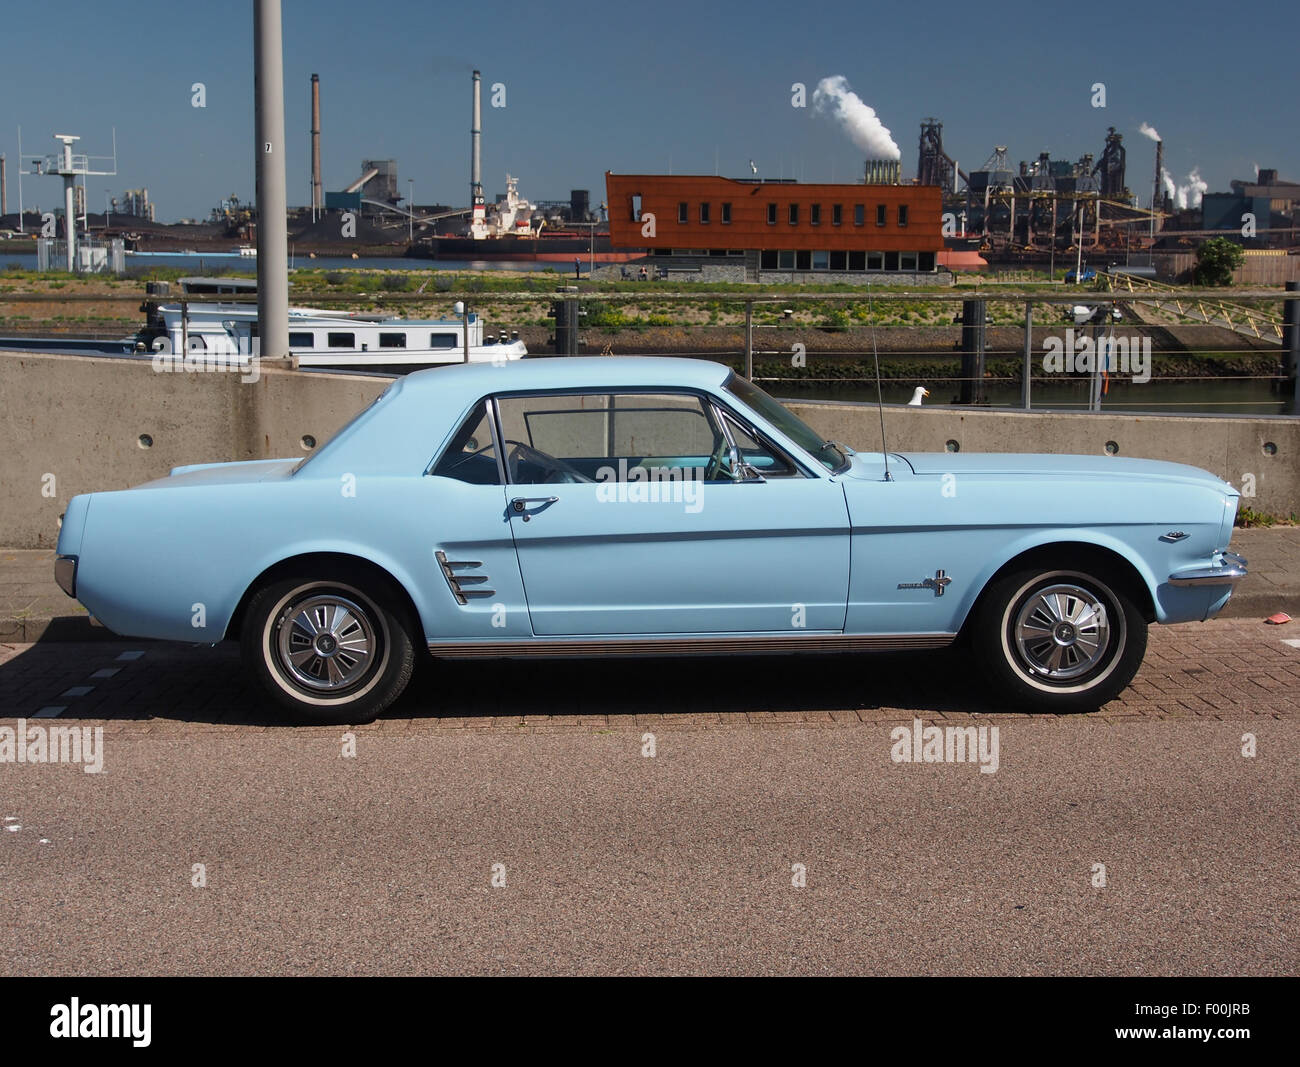 1966 ford mustang light blue pic3 stock image